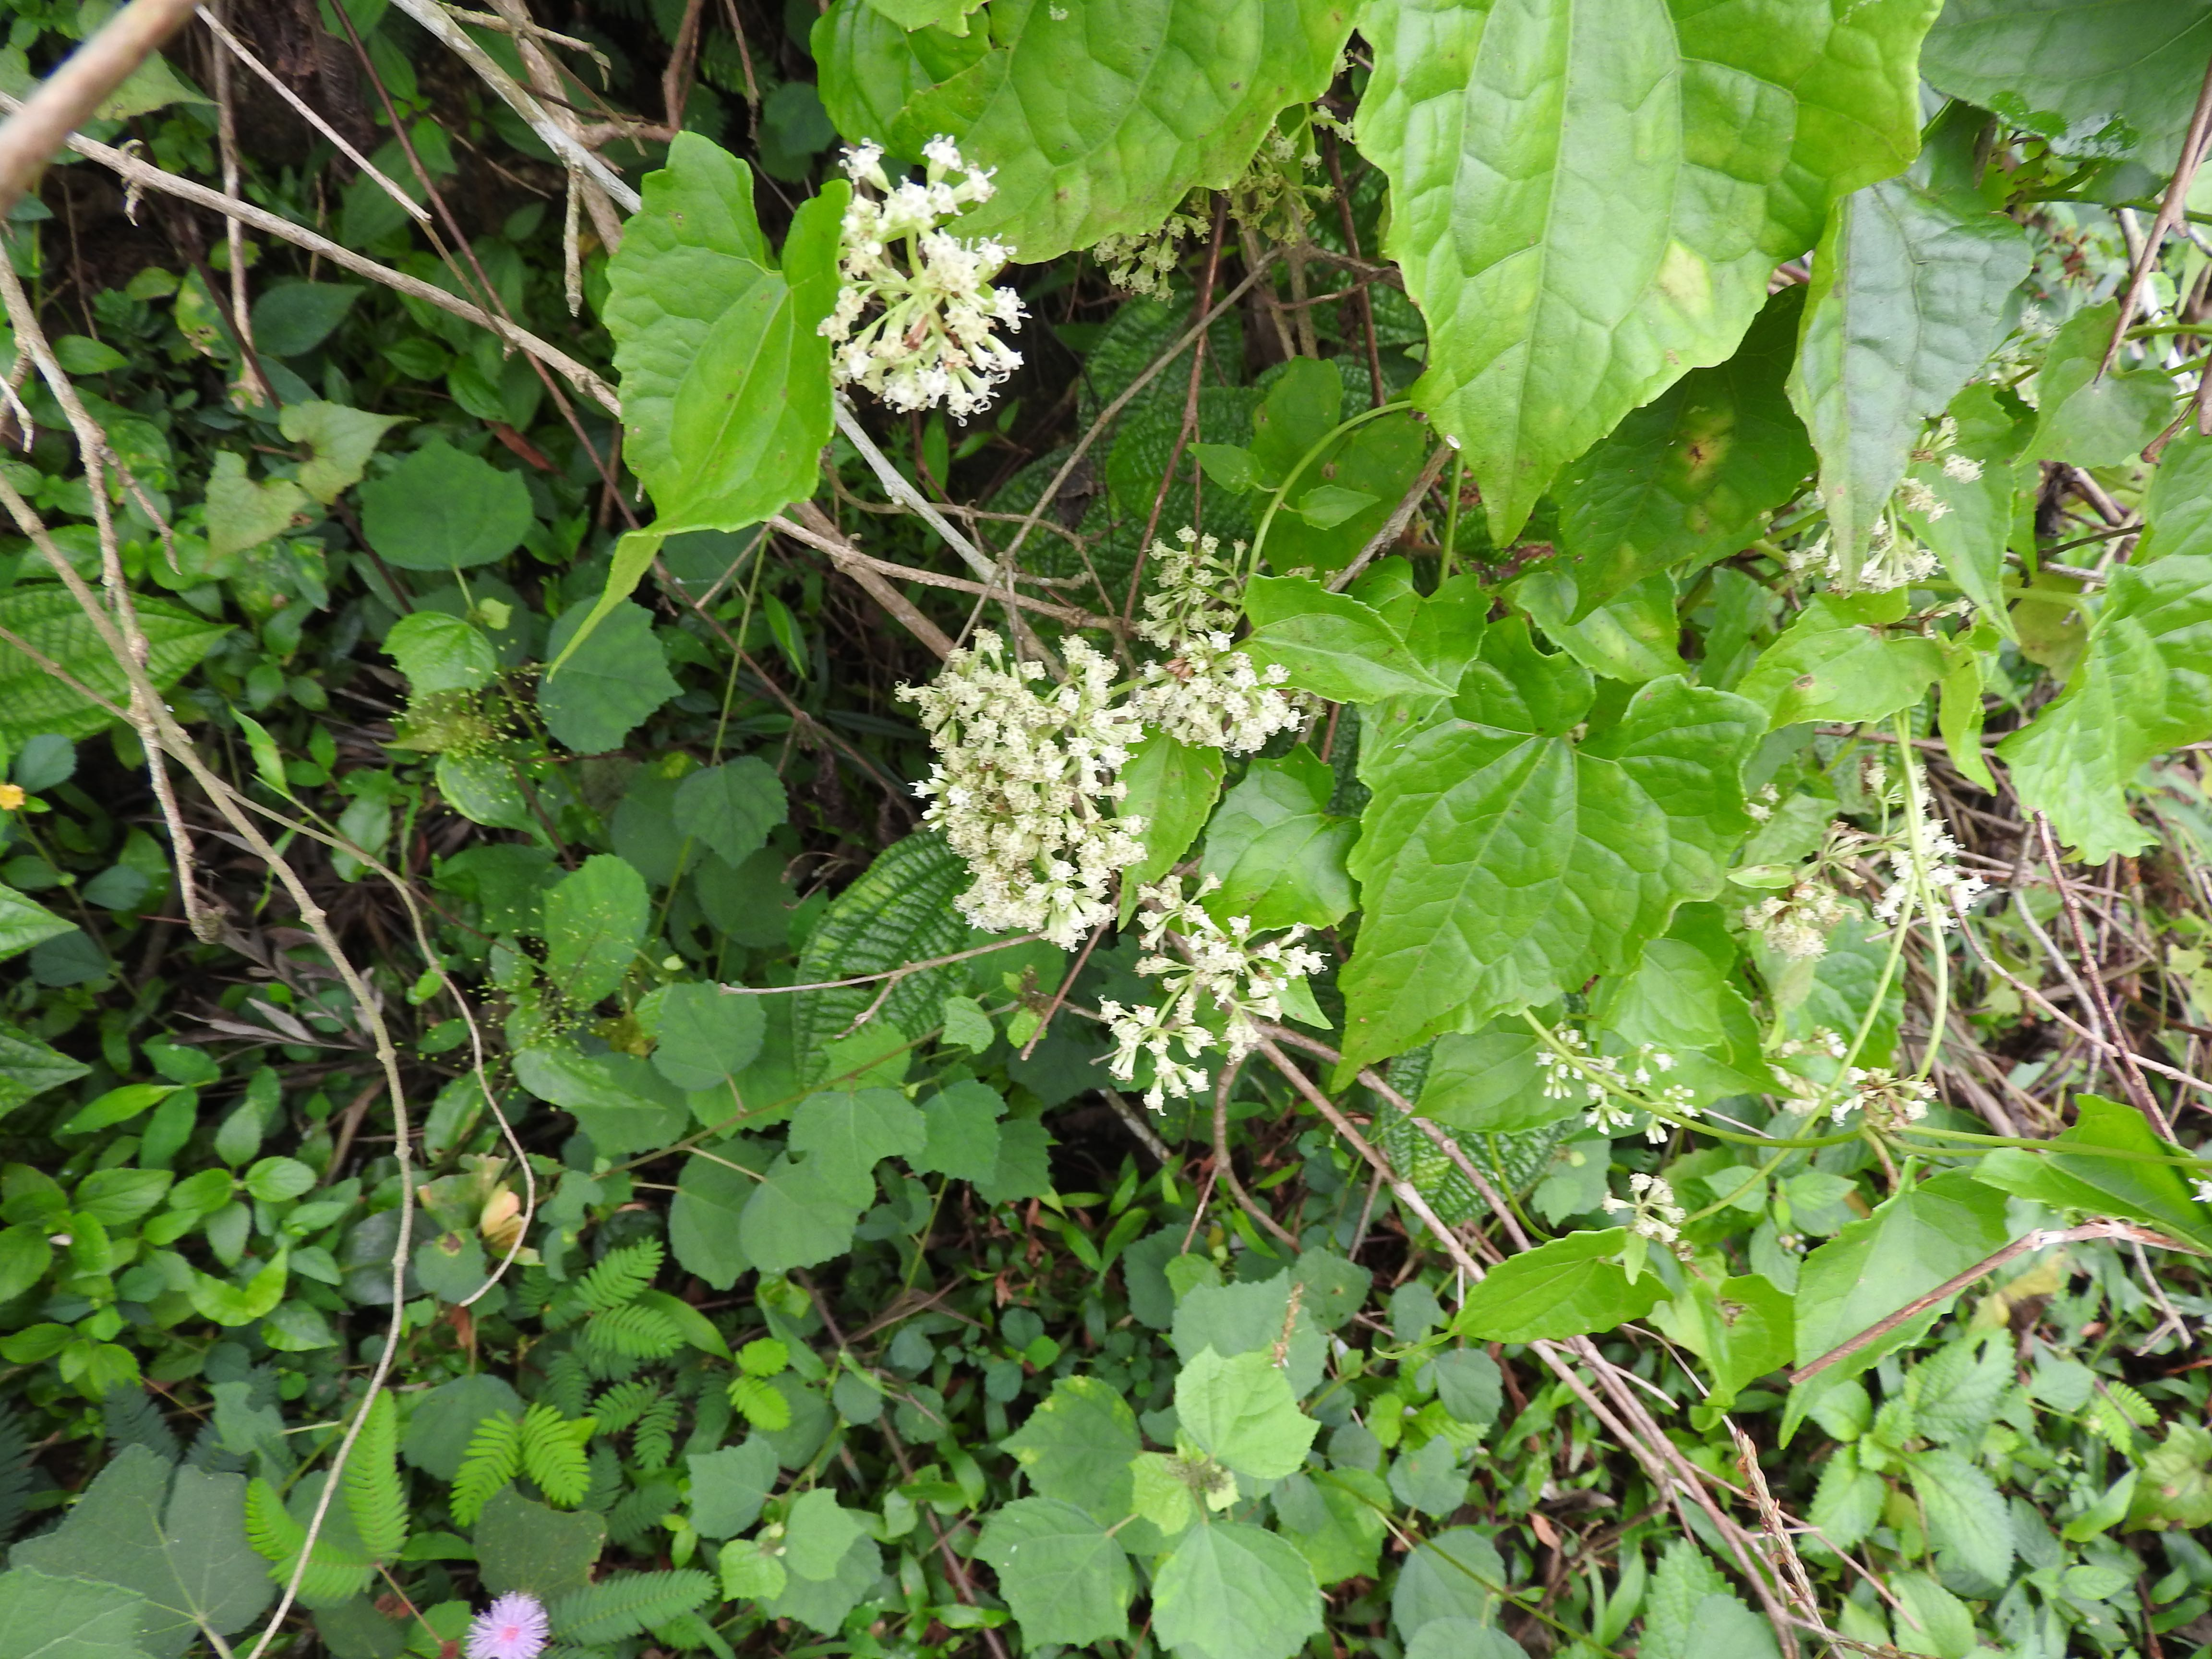 Bittervine (mikenia micrantha) is a rapidly growing invasive species that has affected several forests. A single plant produces thousands of lightweight seeds that are easily dispersed with the wind and spread quickly across large habitats. Photo: Yercaud-elango - CC BY-SA 4.0